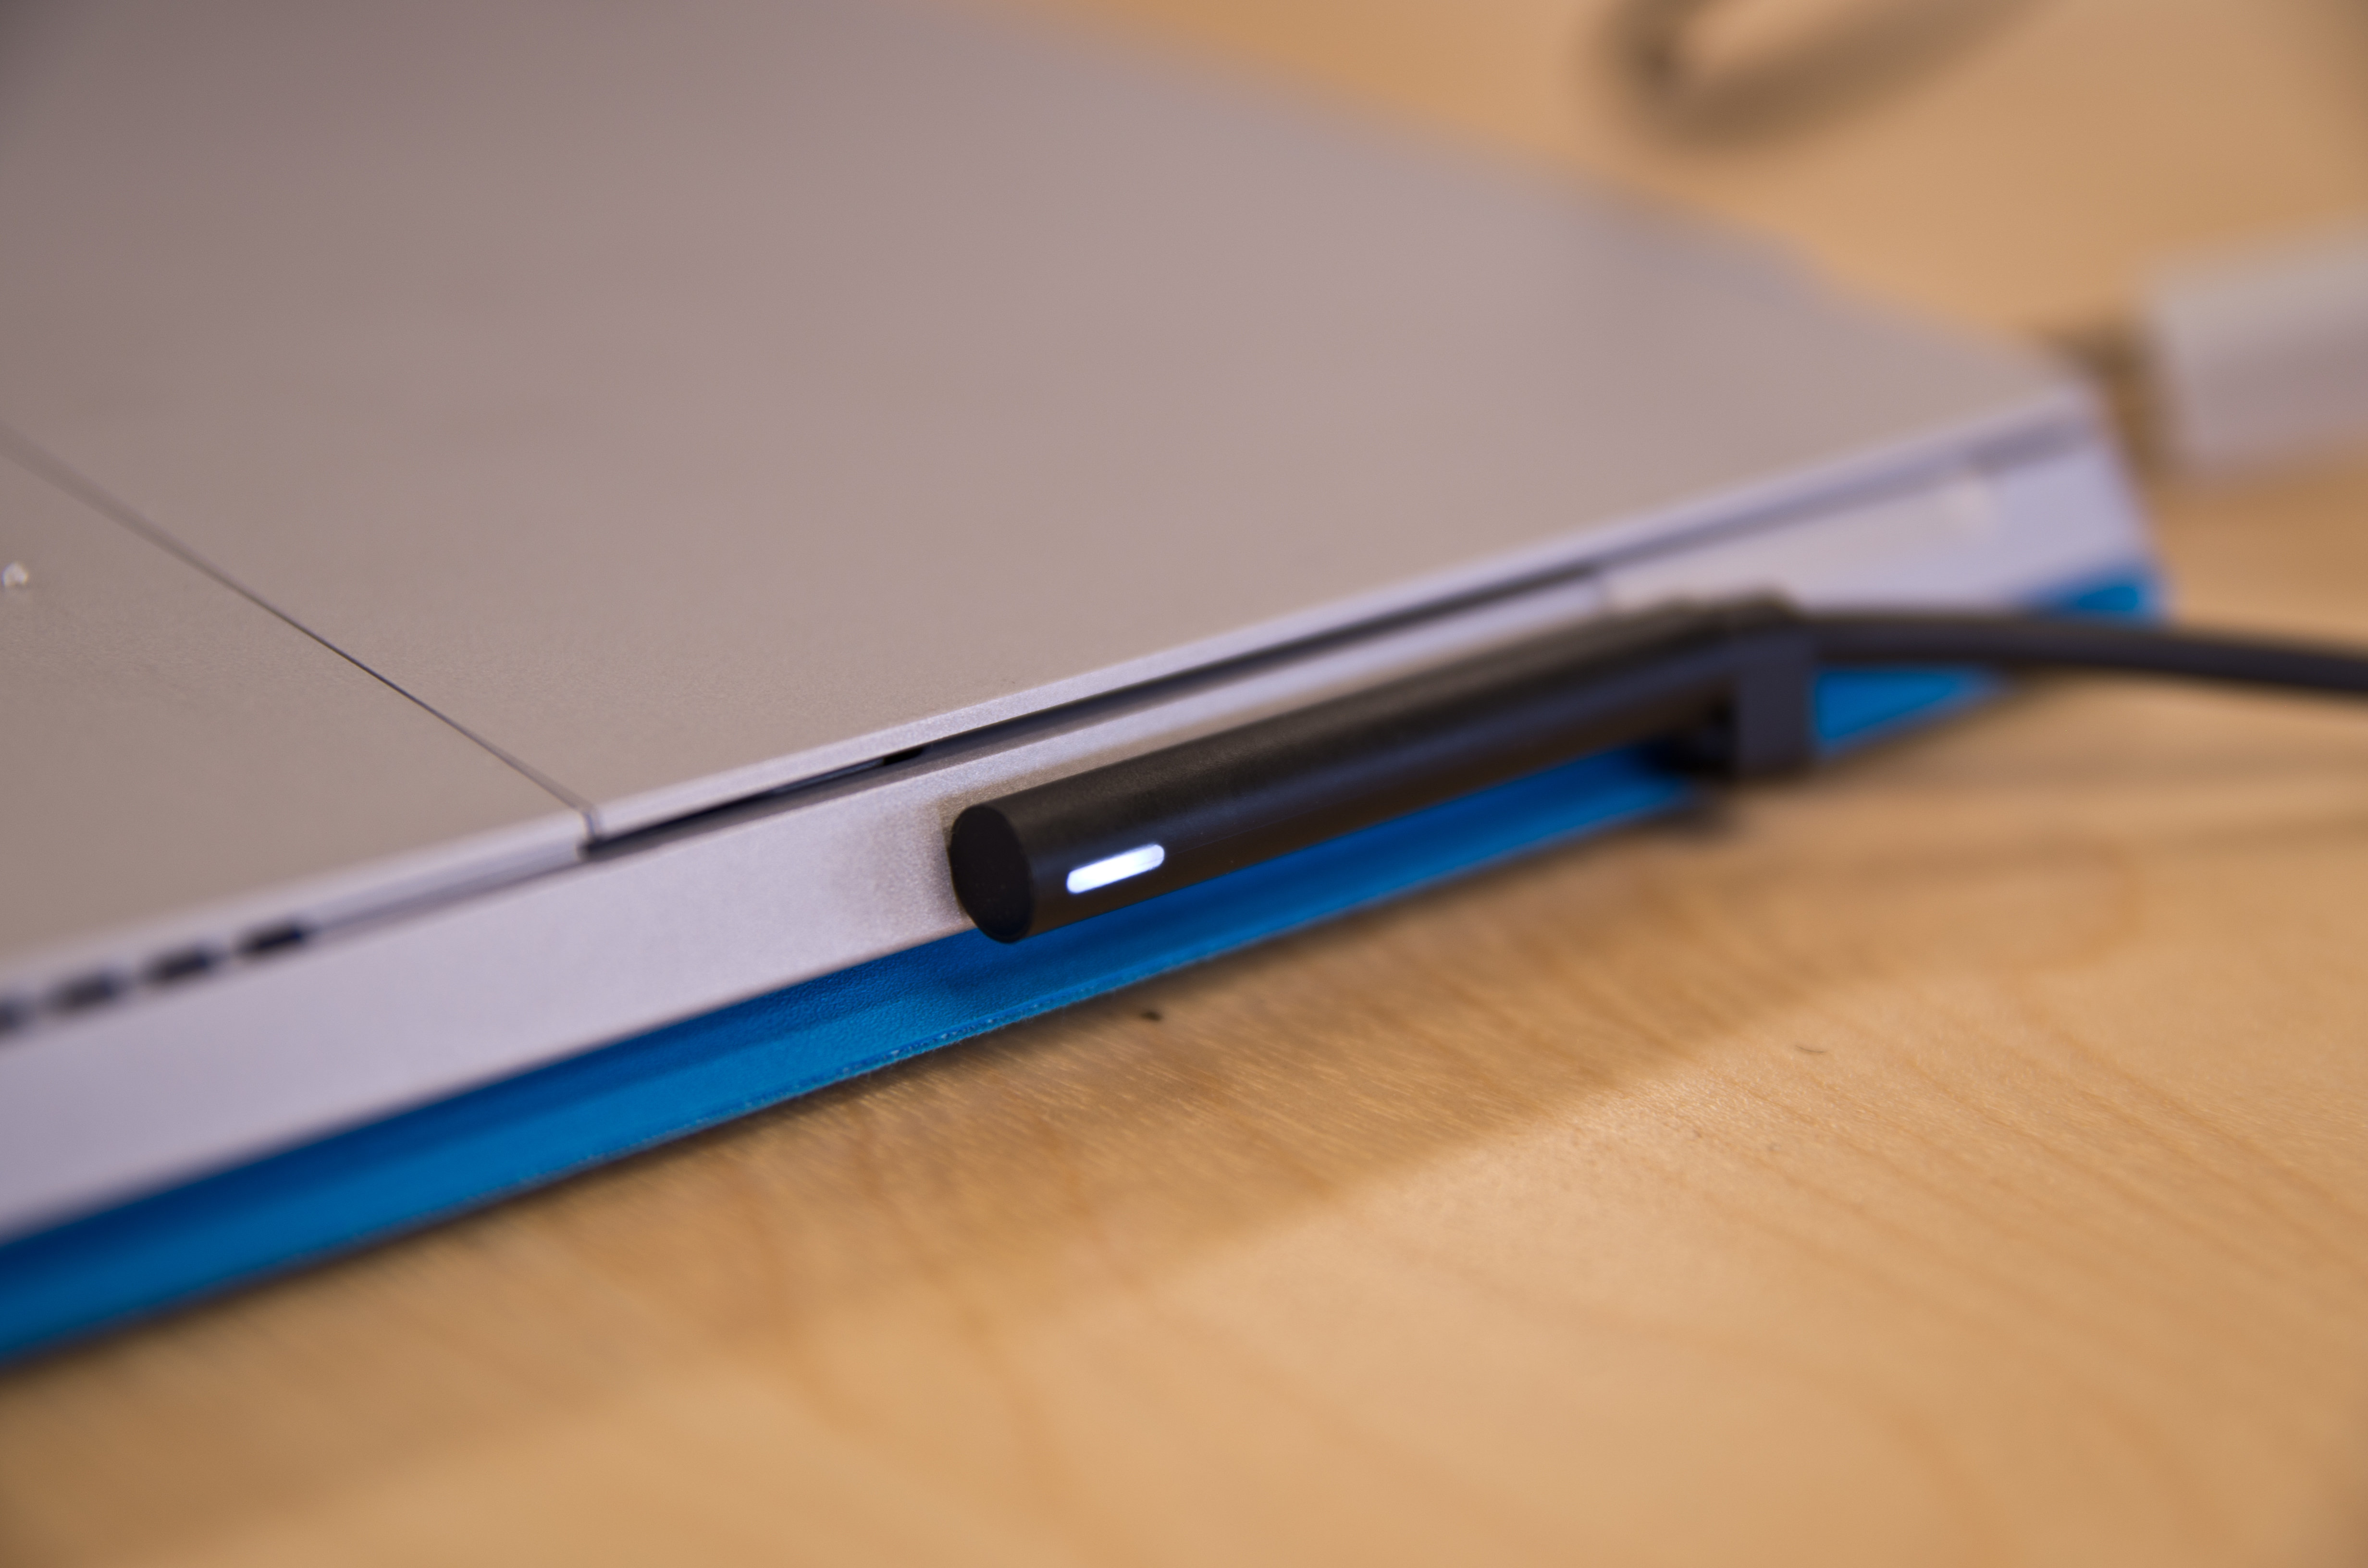 A closer look at the Microsoft Surface Pro 3's charging cable.